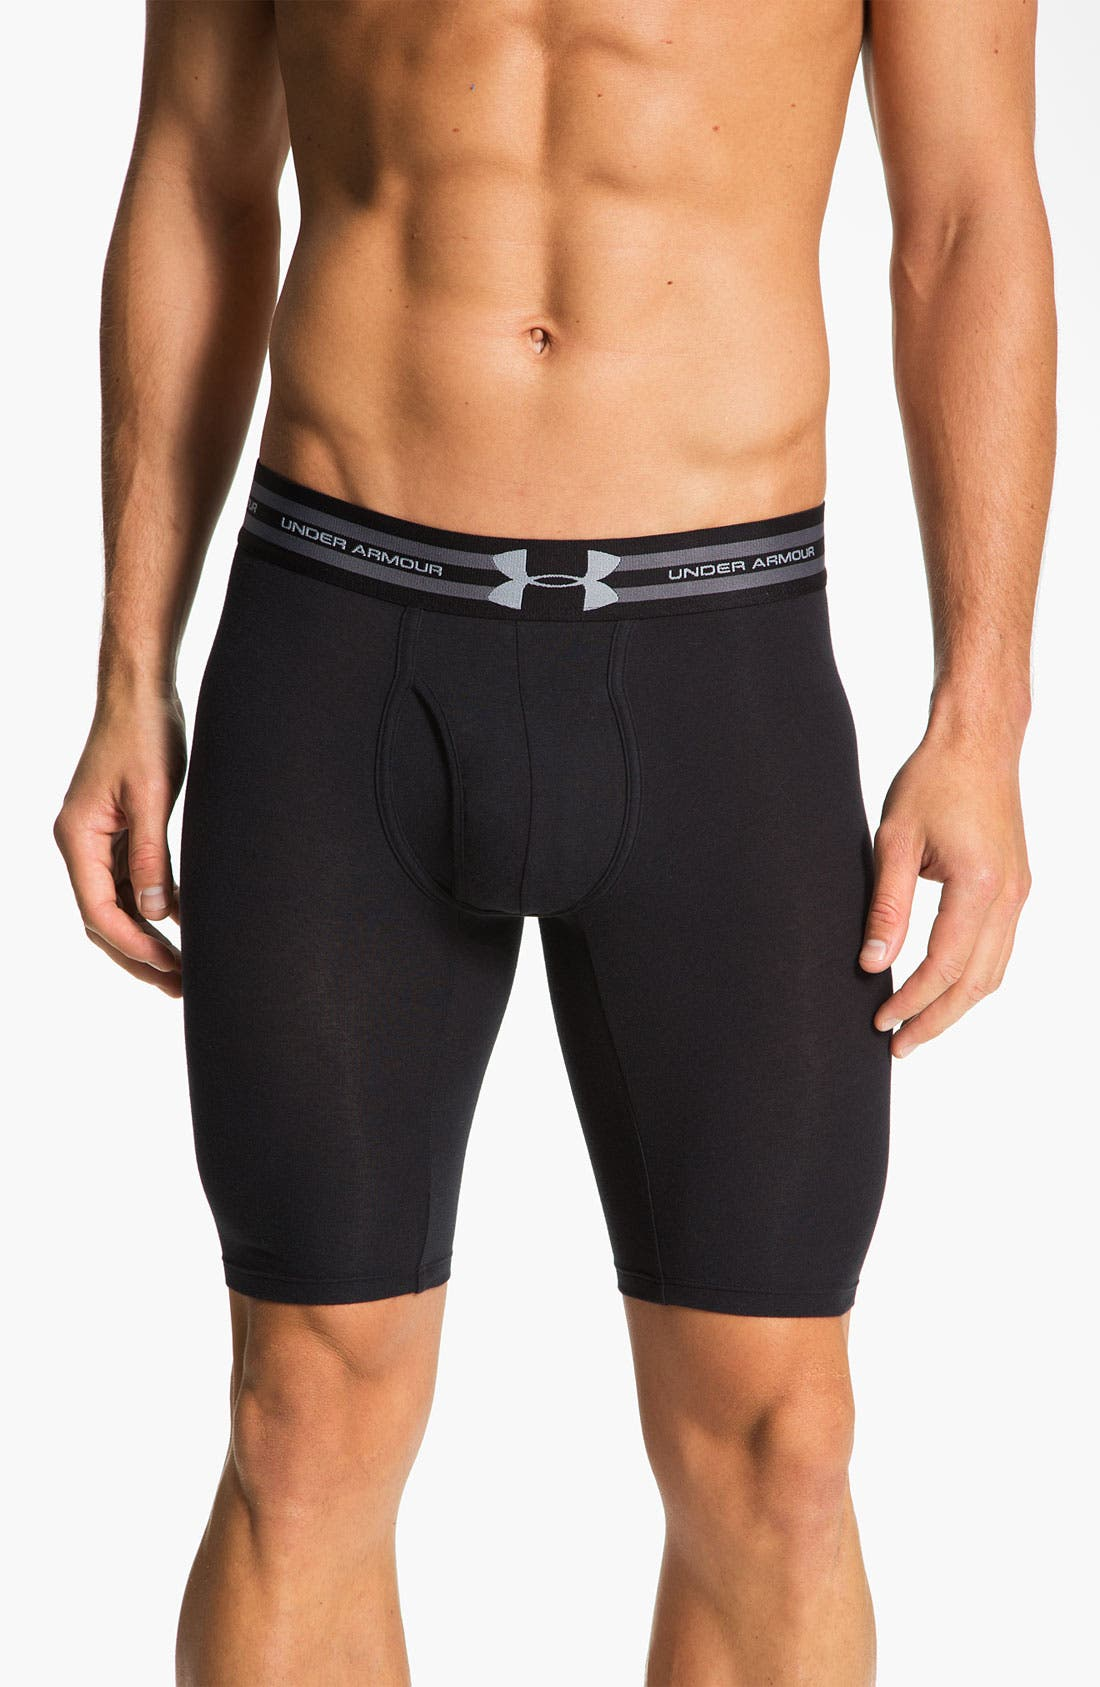 Alternate Image 1 Selected - Under Armour 'Charged' Boxer Briefs